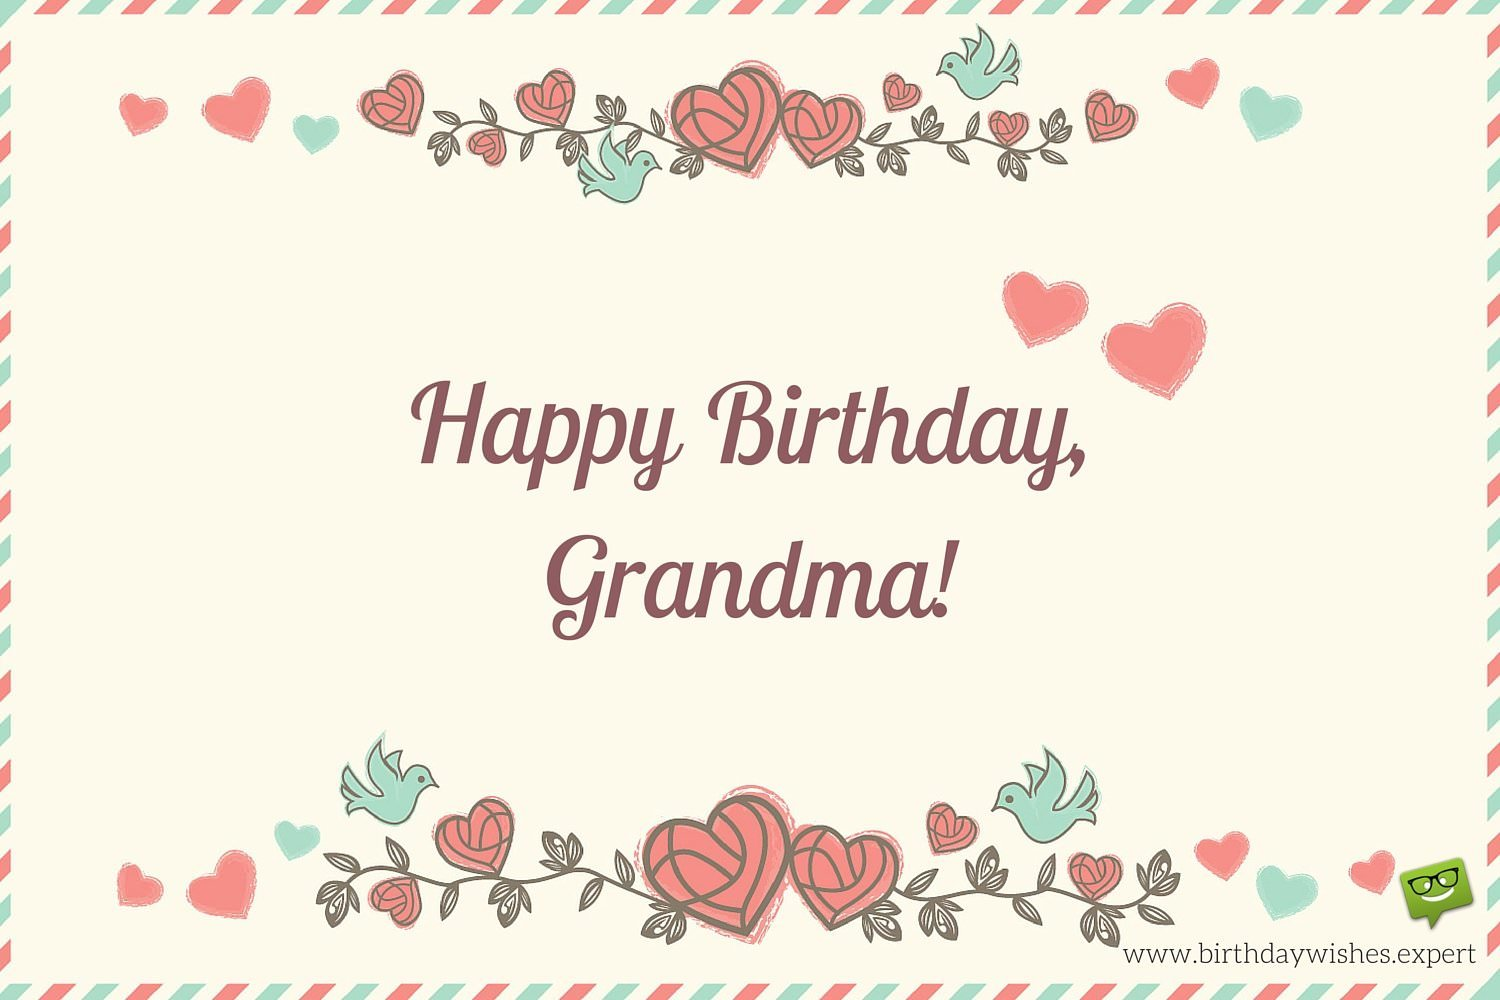 birthday card for grandma from granddaughter ; Happy-Birthday-Grandma-on-image-of-an-old-envelope-with-flowers-and-cute-hearts